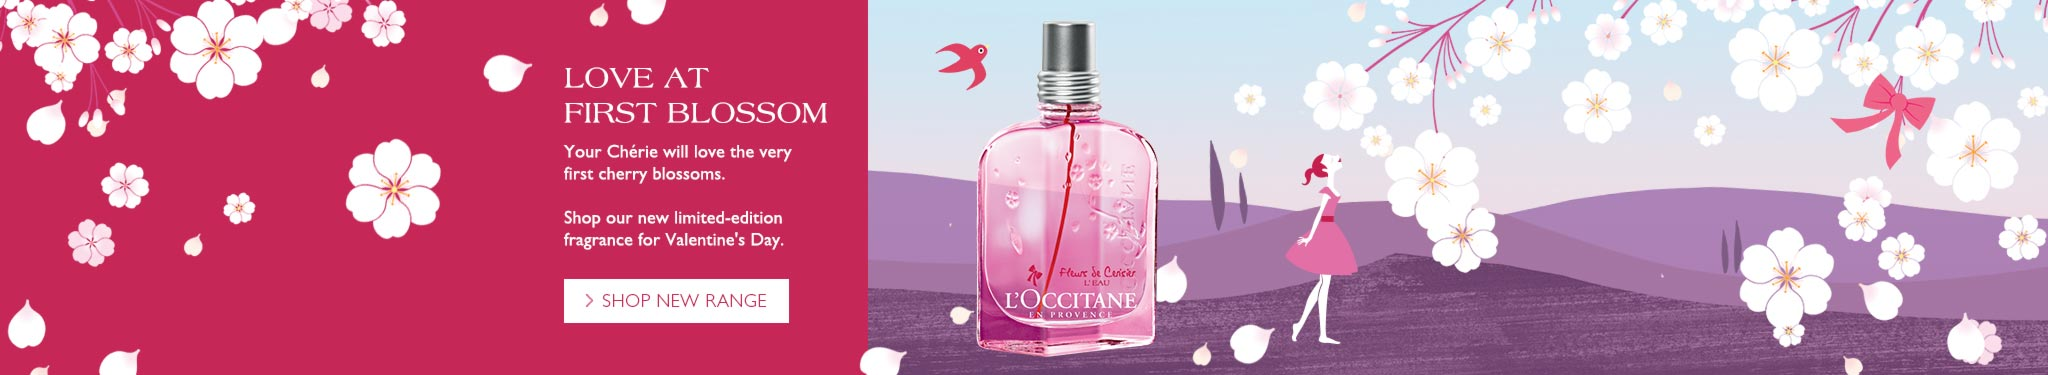 With new fragrance Cherry Blossom L'Eau